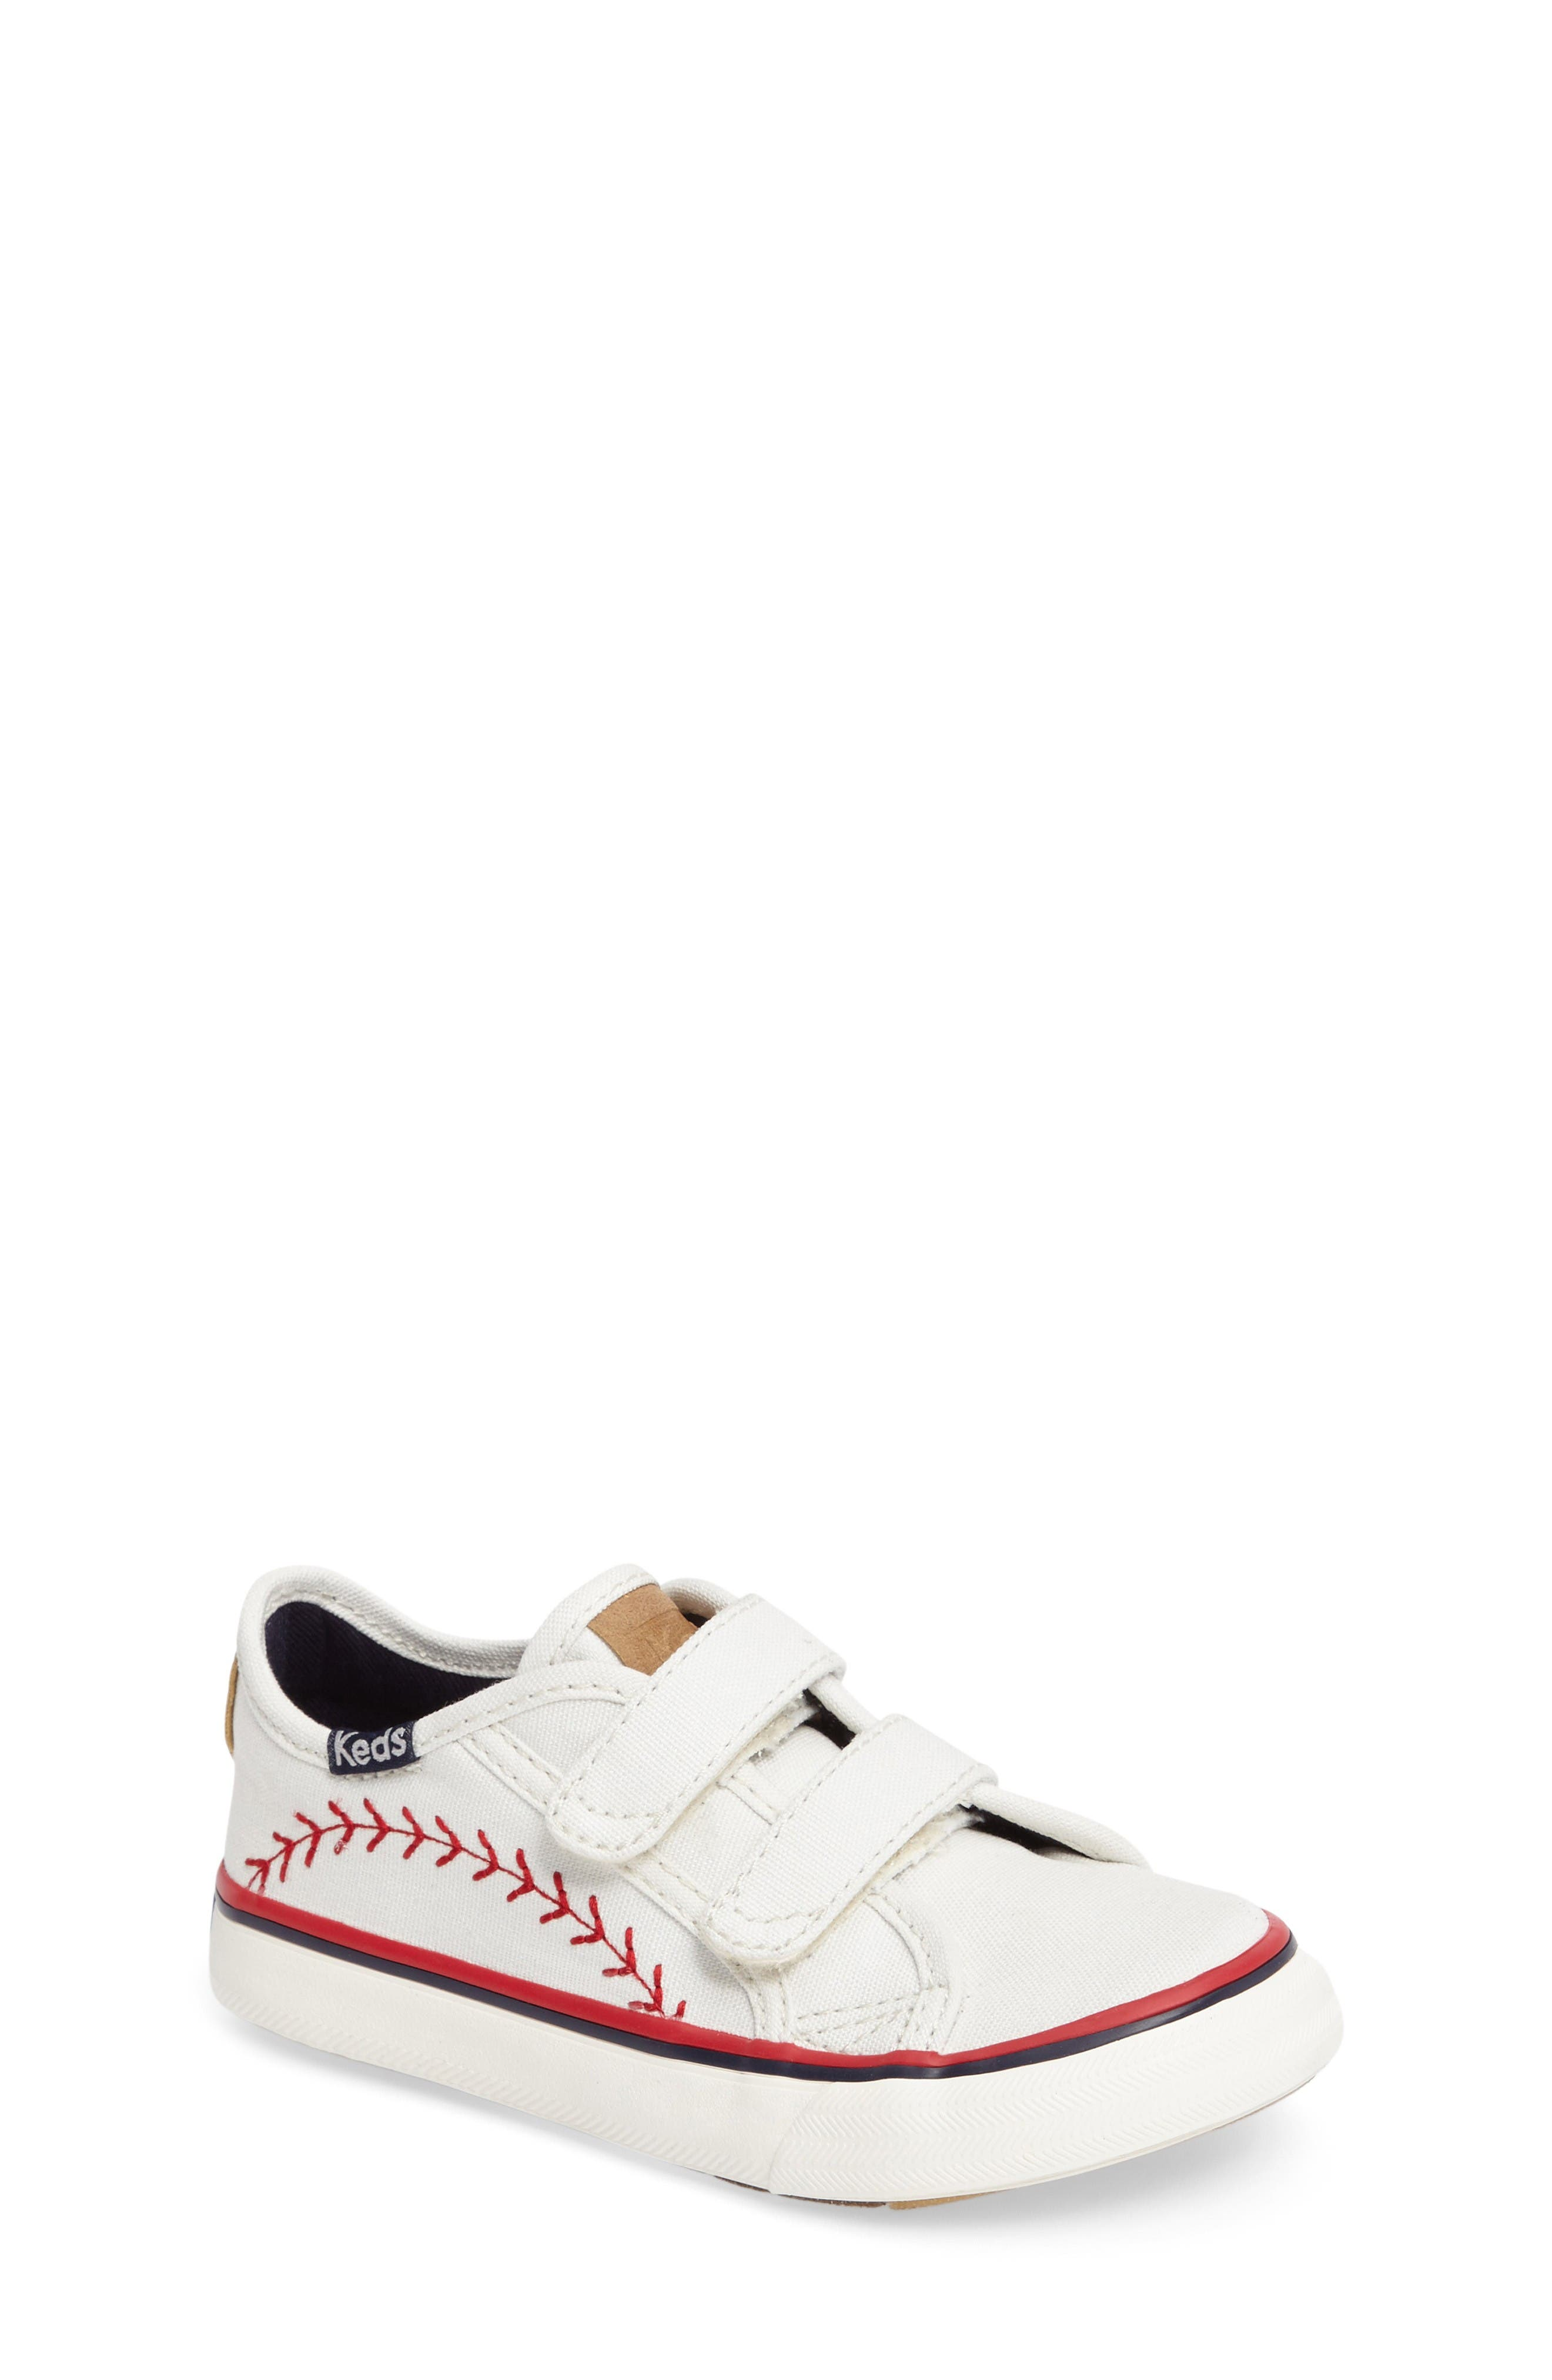 Main Image - Keds® Pennant Double Up Sneaker (Baby, Walker & Toddler)